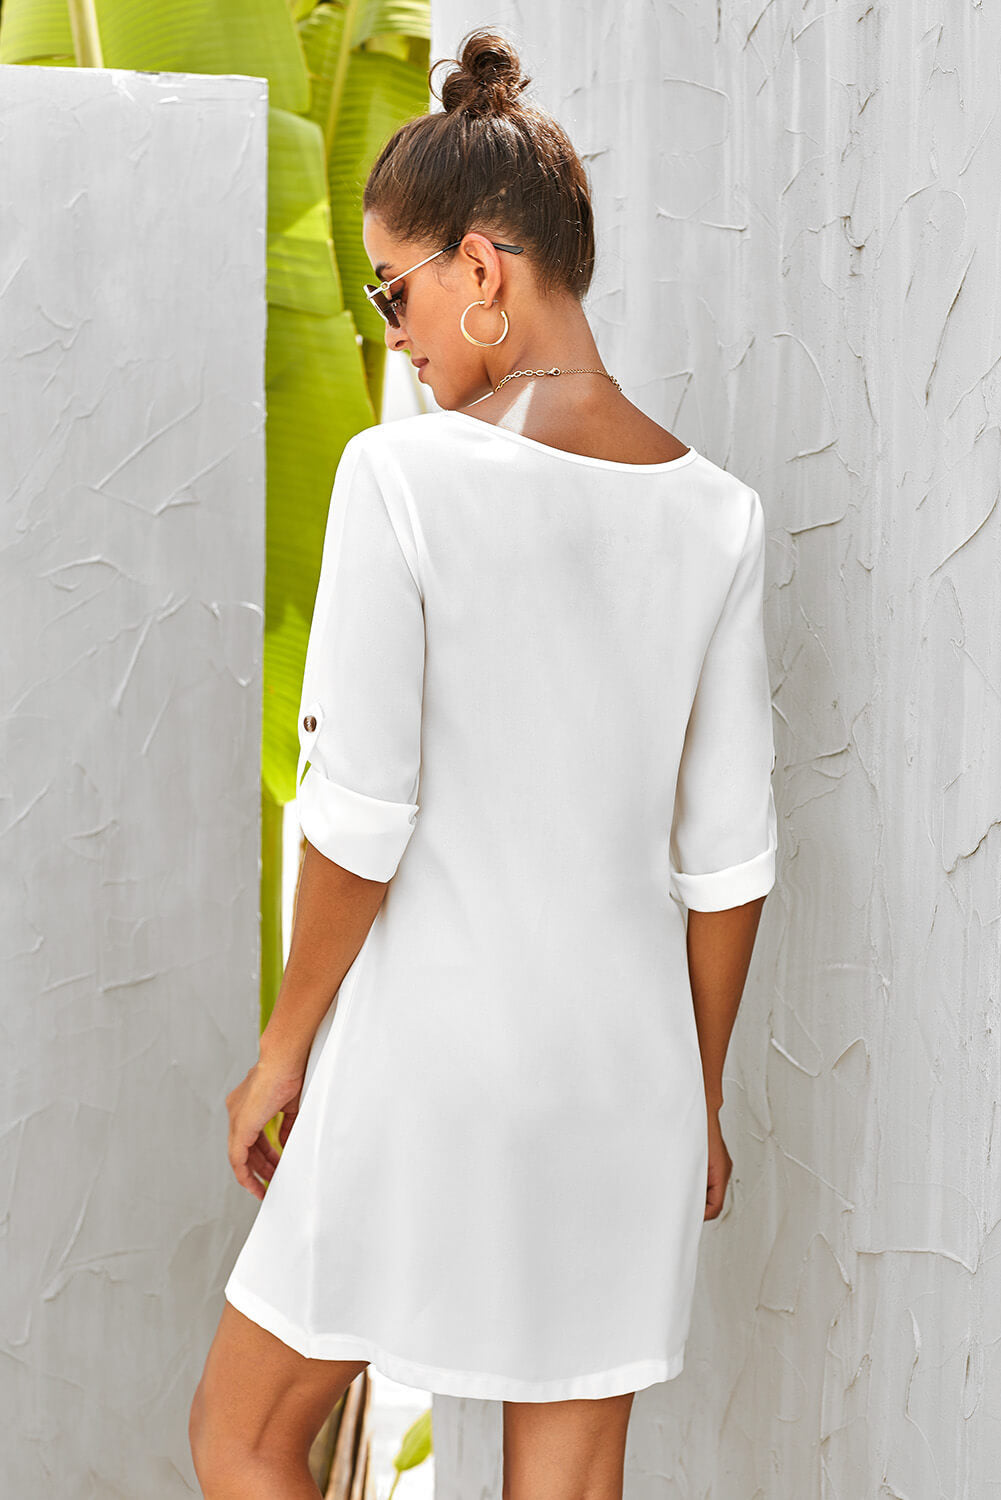 Robe Blanche Femme Col V Bouton Manches Retroussees Modebuy Com